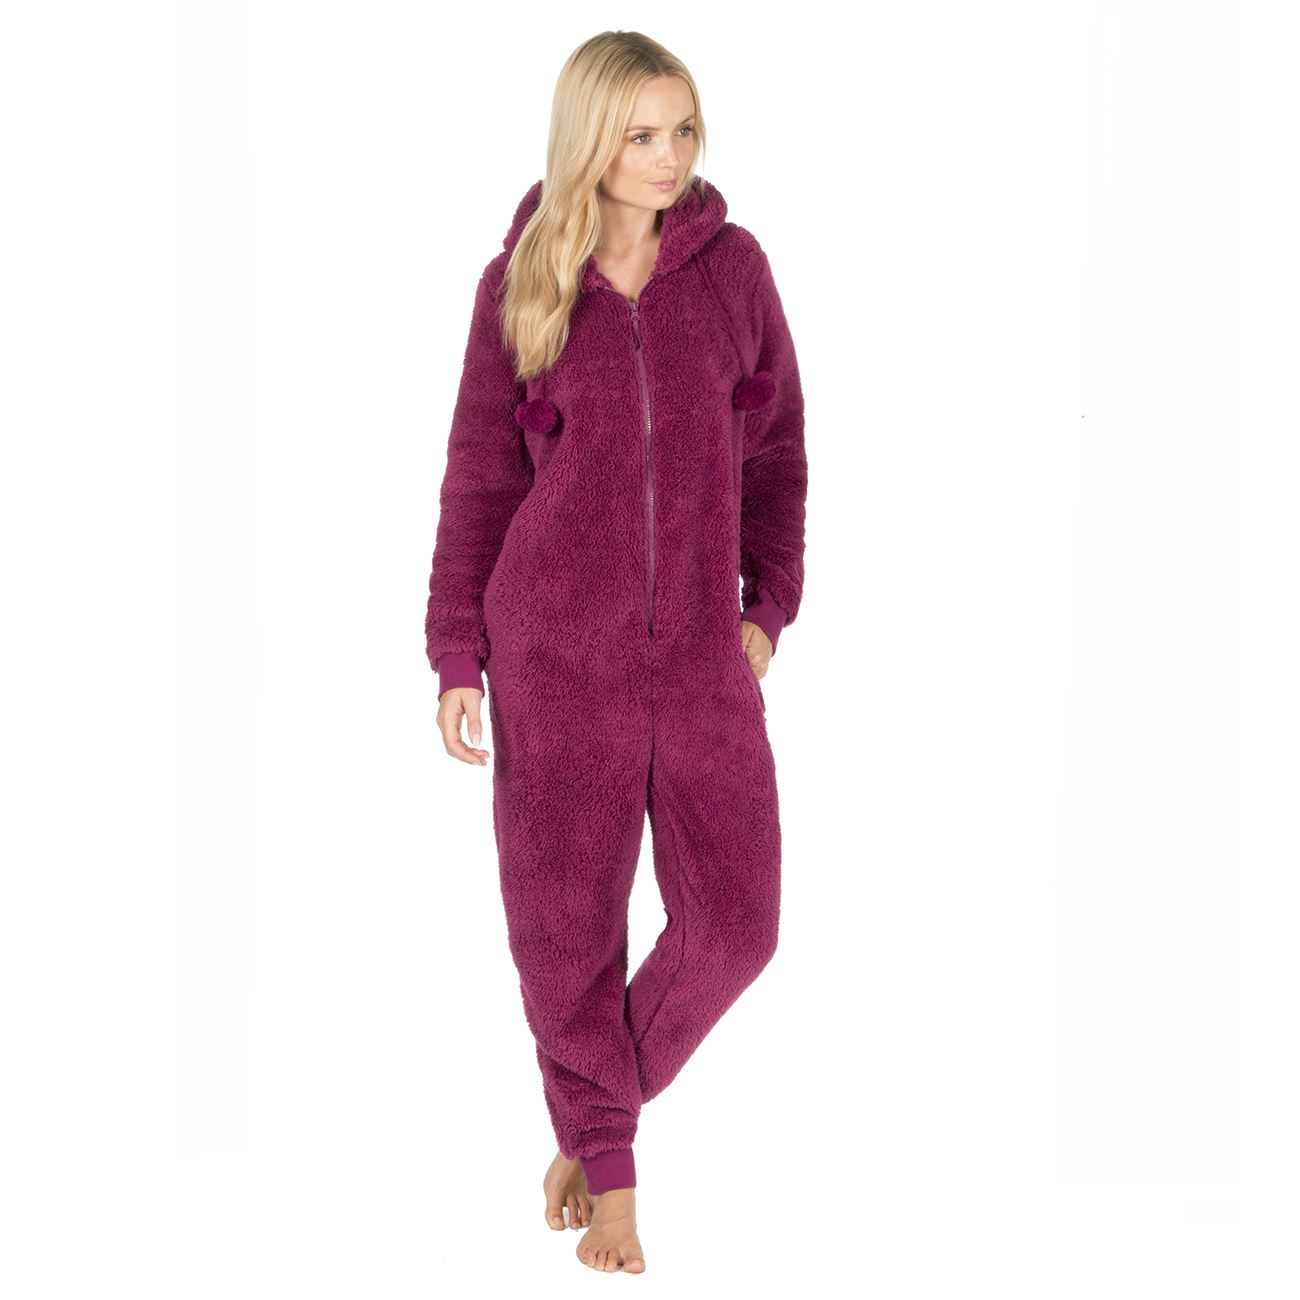 Ladies-Womens-Girls-Fleece-All-In-One-Pyjamas-Outfit-Jumpsuit-Costume-Size-6-18 thumbnail 25